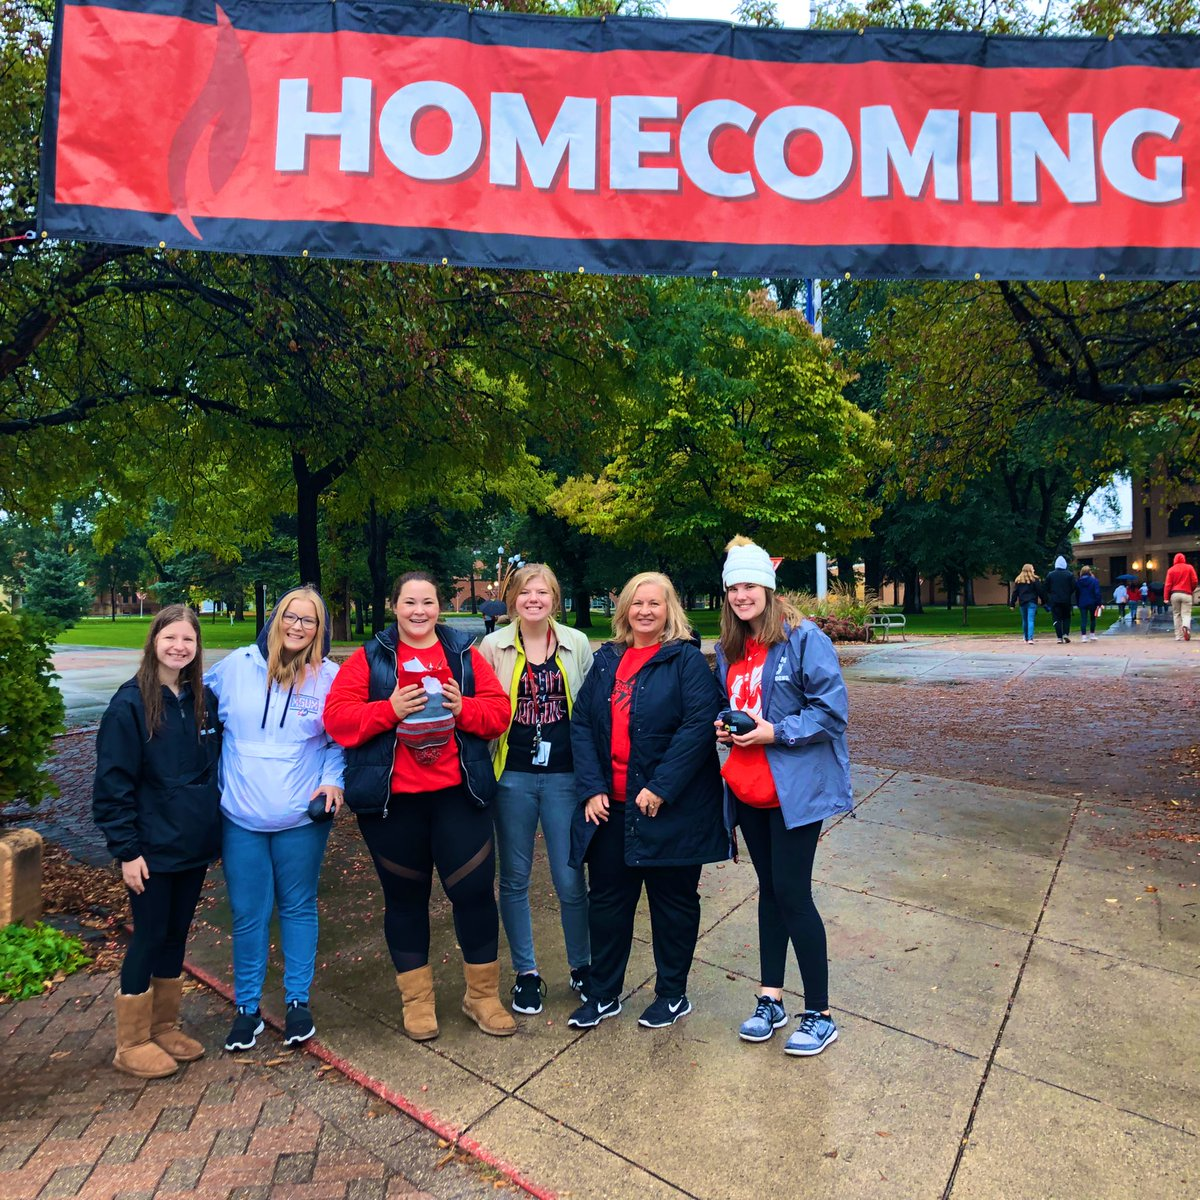 I give because I believe education and the college student experience changes lives for the better. #FirstGenerationStudent #StudentSuccess #BrightFuture #MSUMGivingDay #OpeningDoors https://t.co/WABukNvm97 https://t.co/laLKBDw2IX